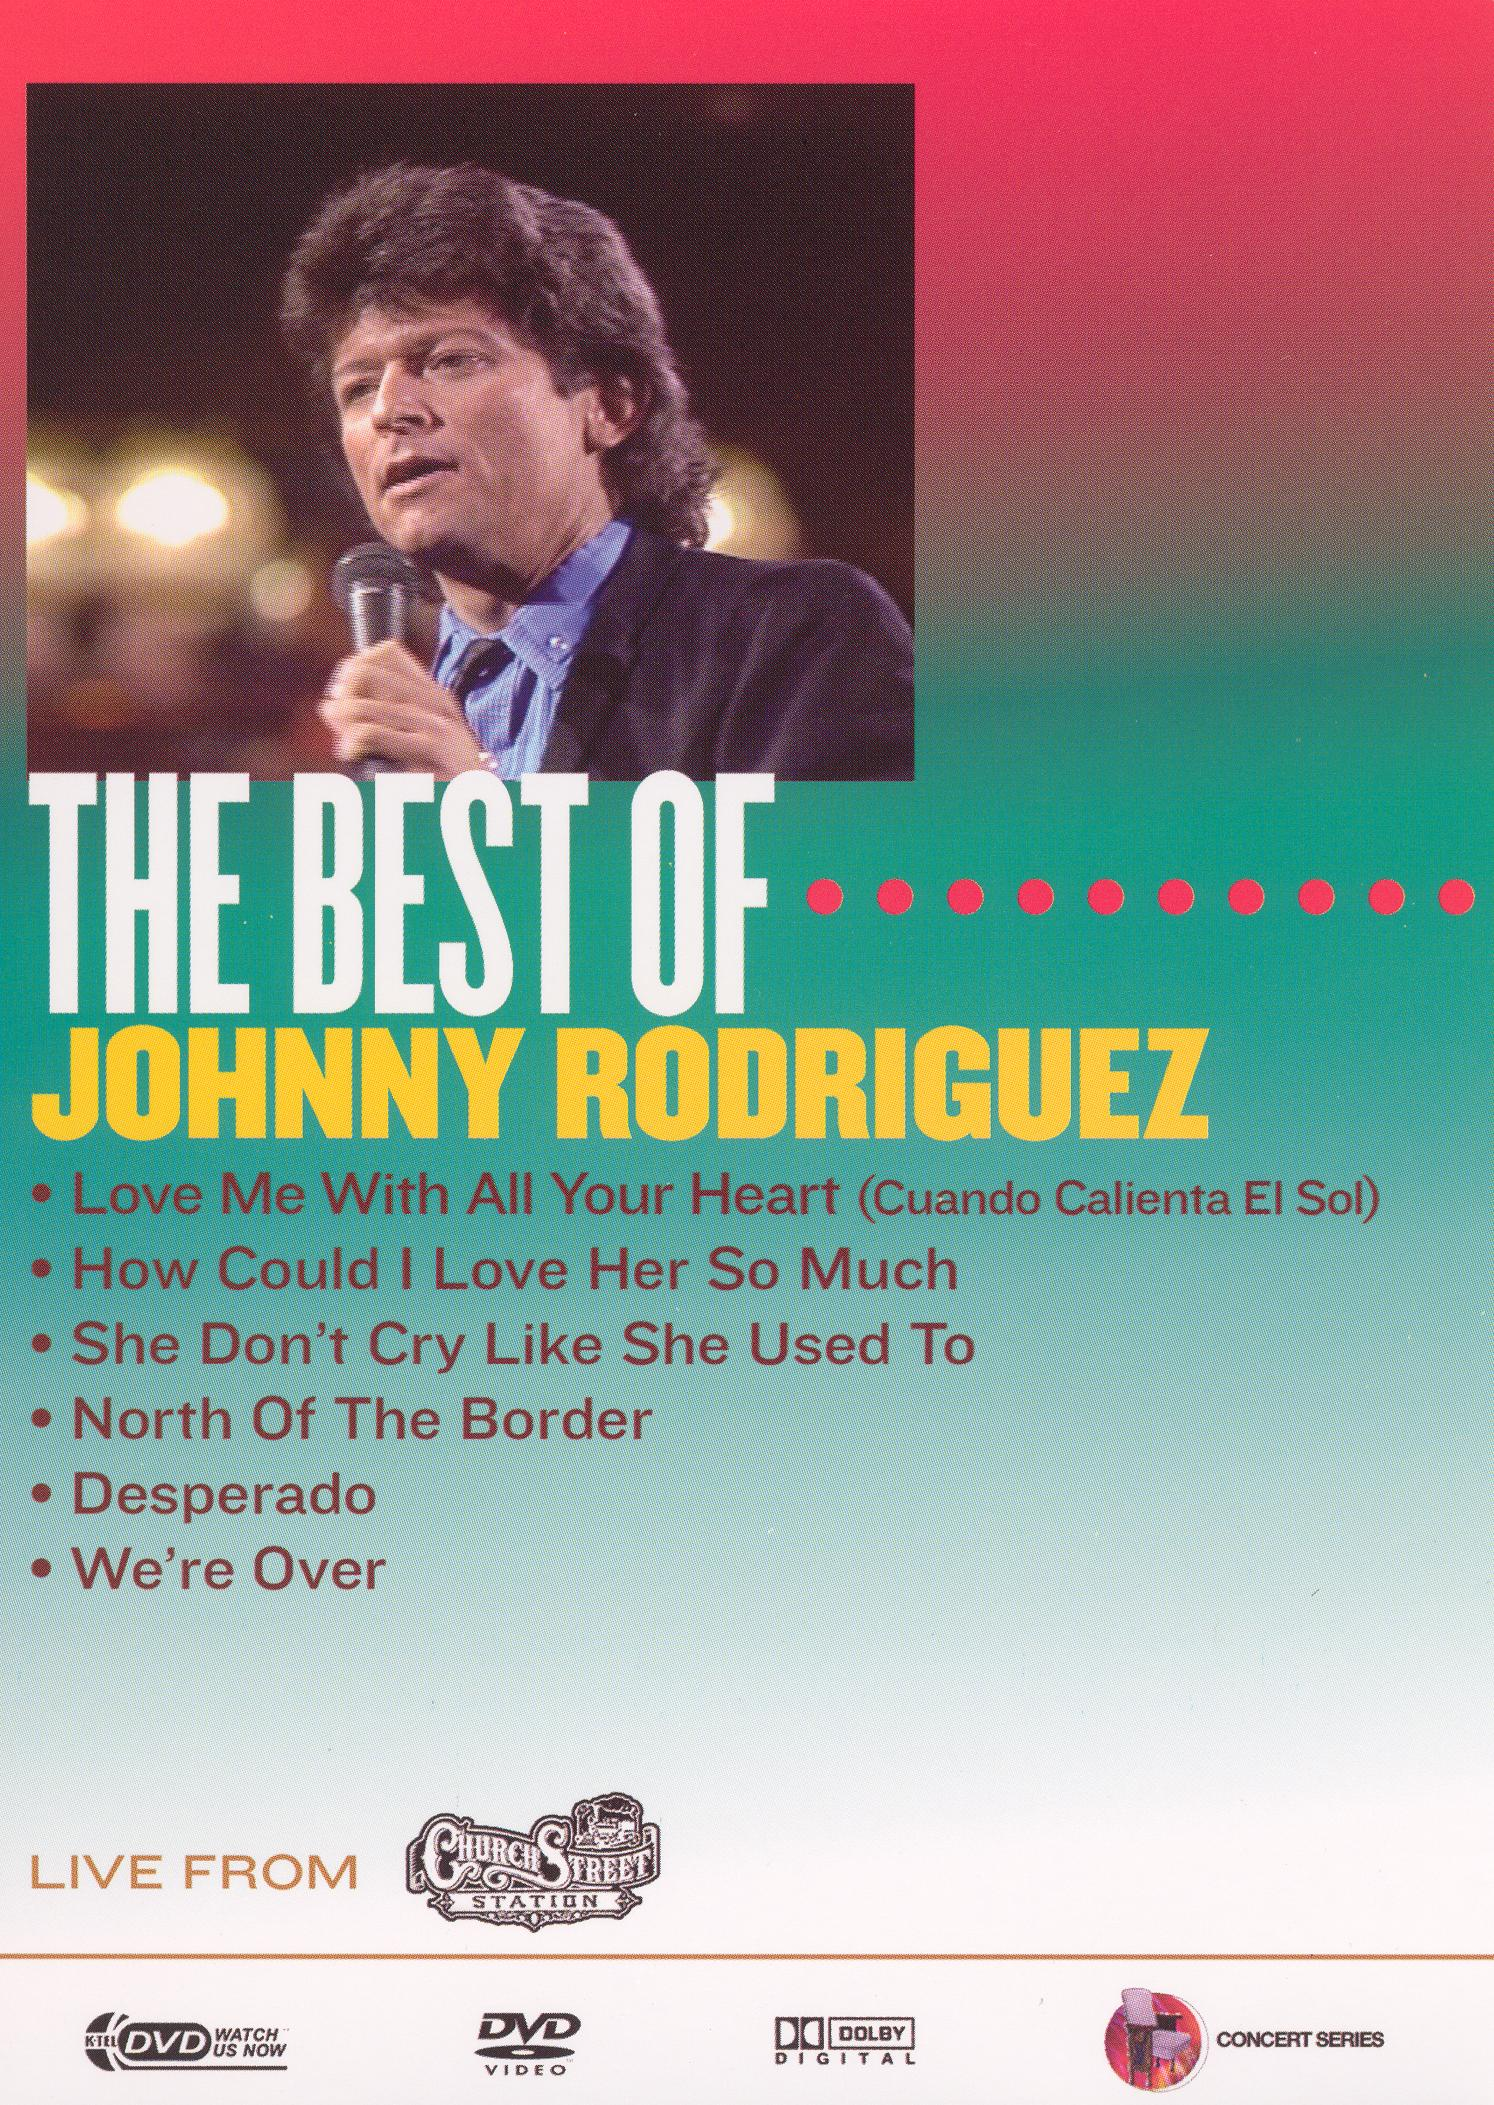 Live From Rock 'n' Roll Palace: The Best of Johnny Rodriguez